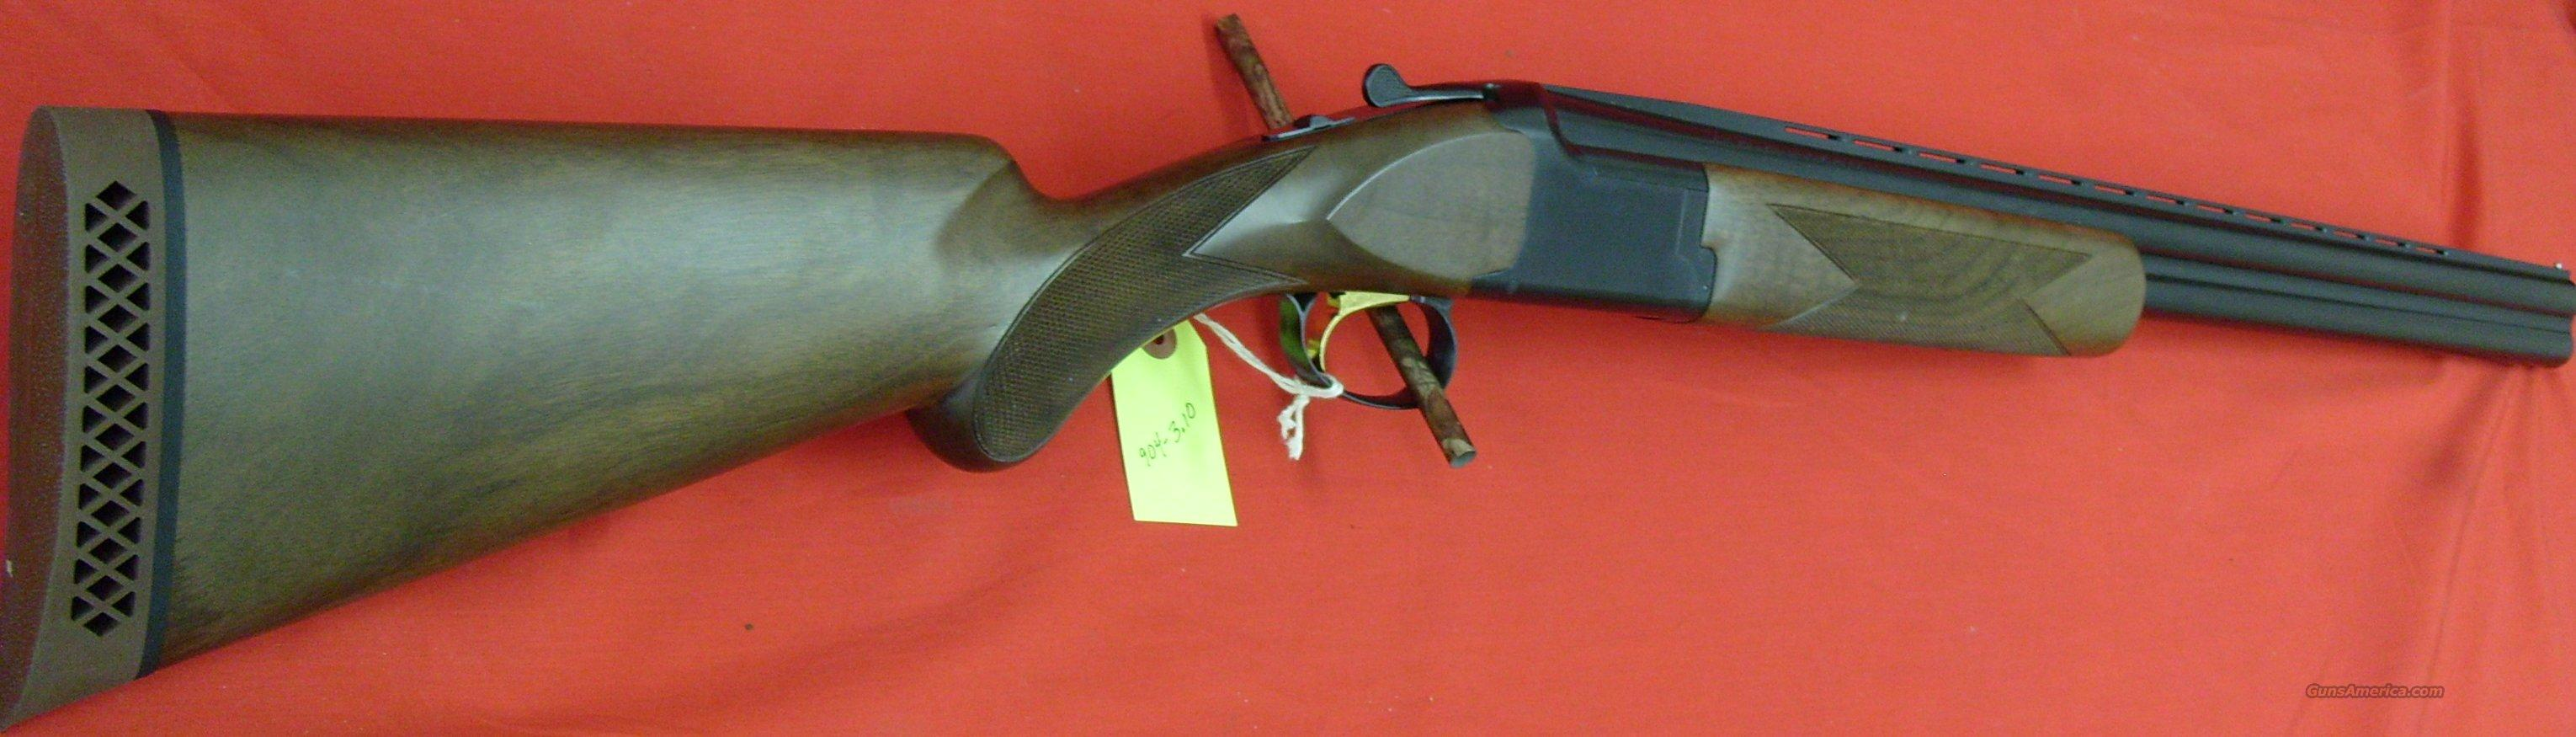 "BROWNING CITORI LIGHTNING GR1 12GA-3.5""MAG  Guns > Shotguns > Browning Shotguns > Over Unders > Citori > Hunting"